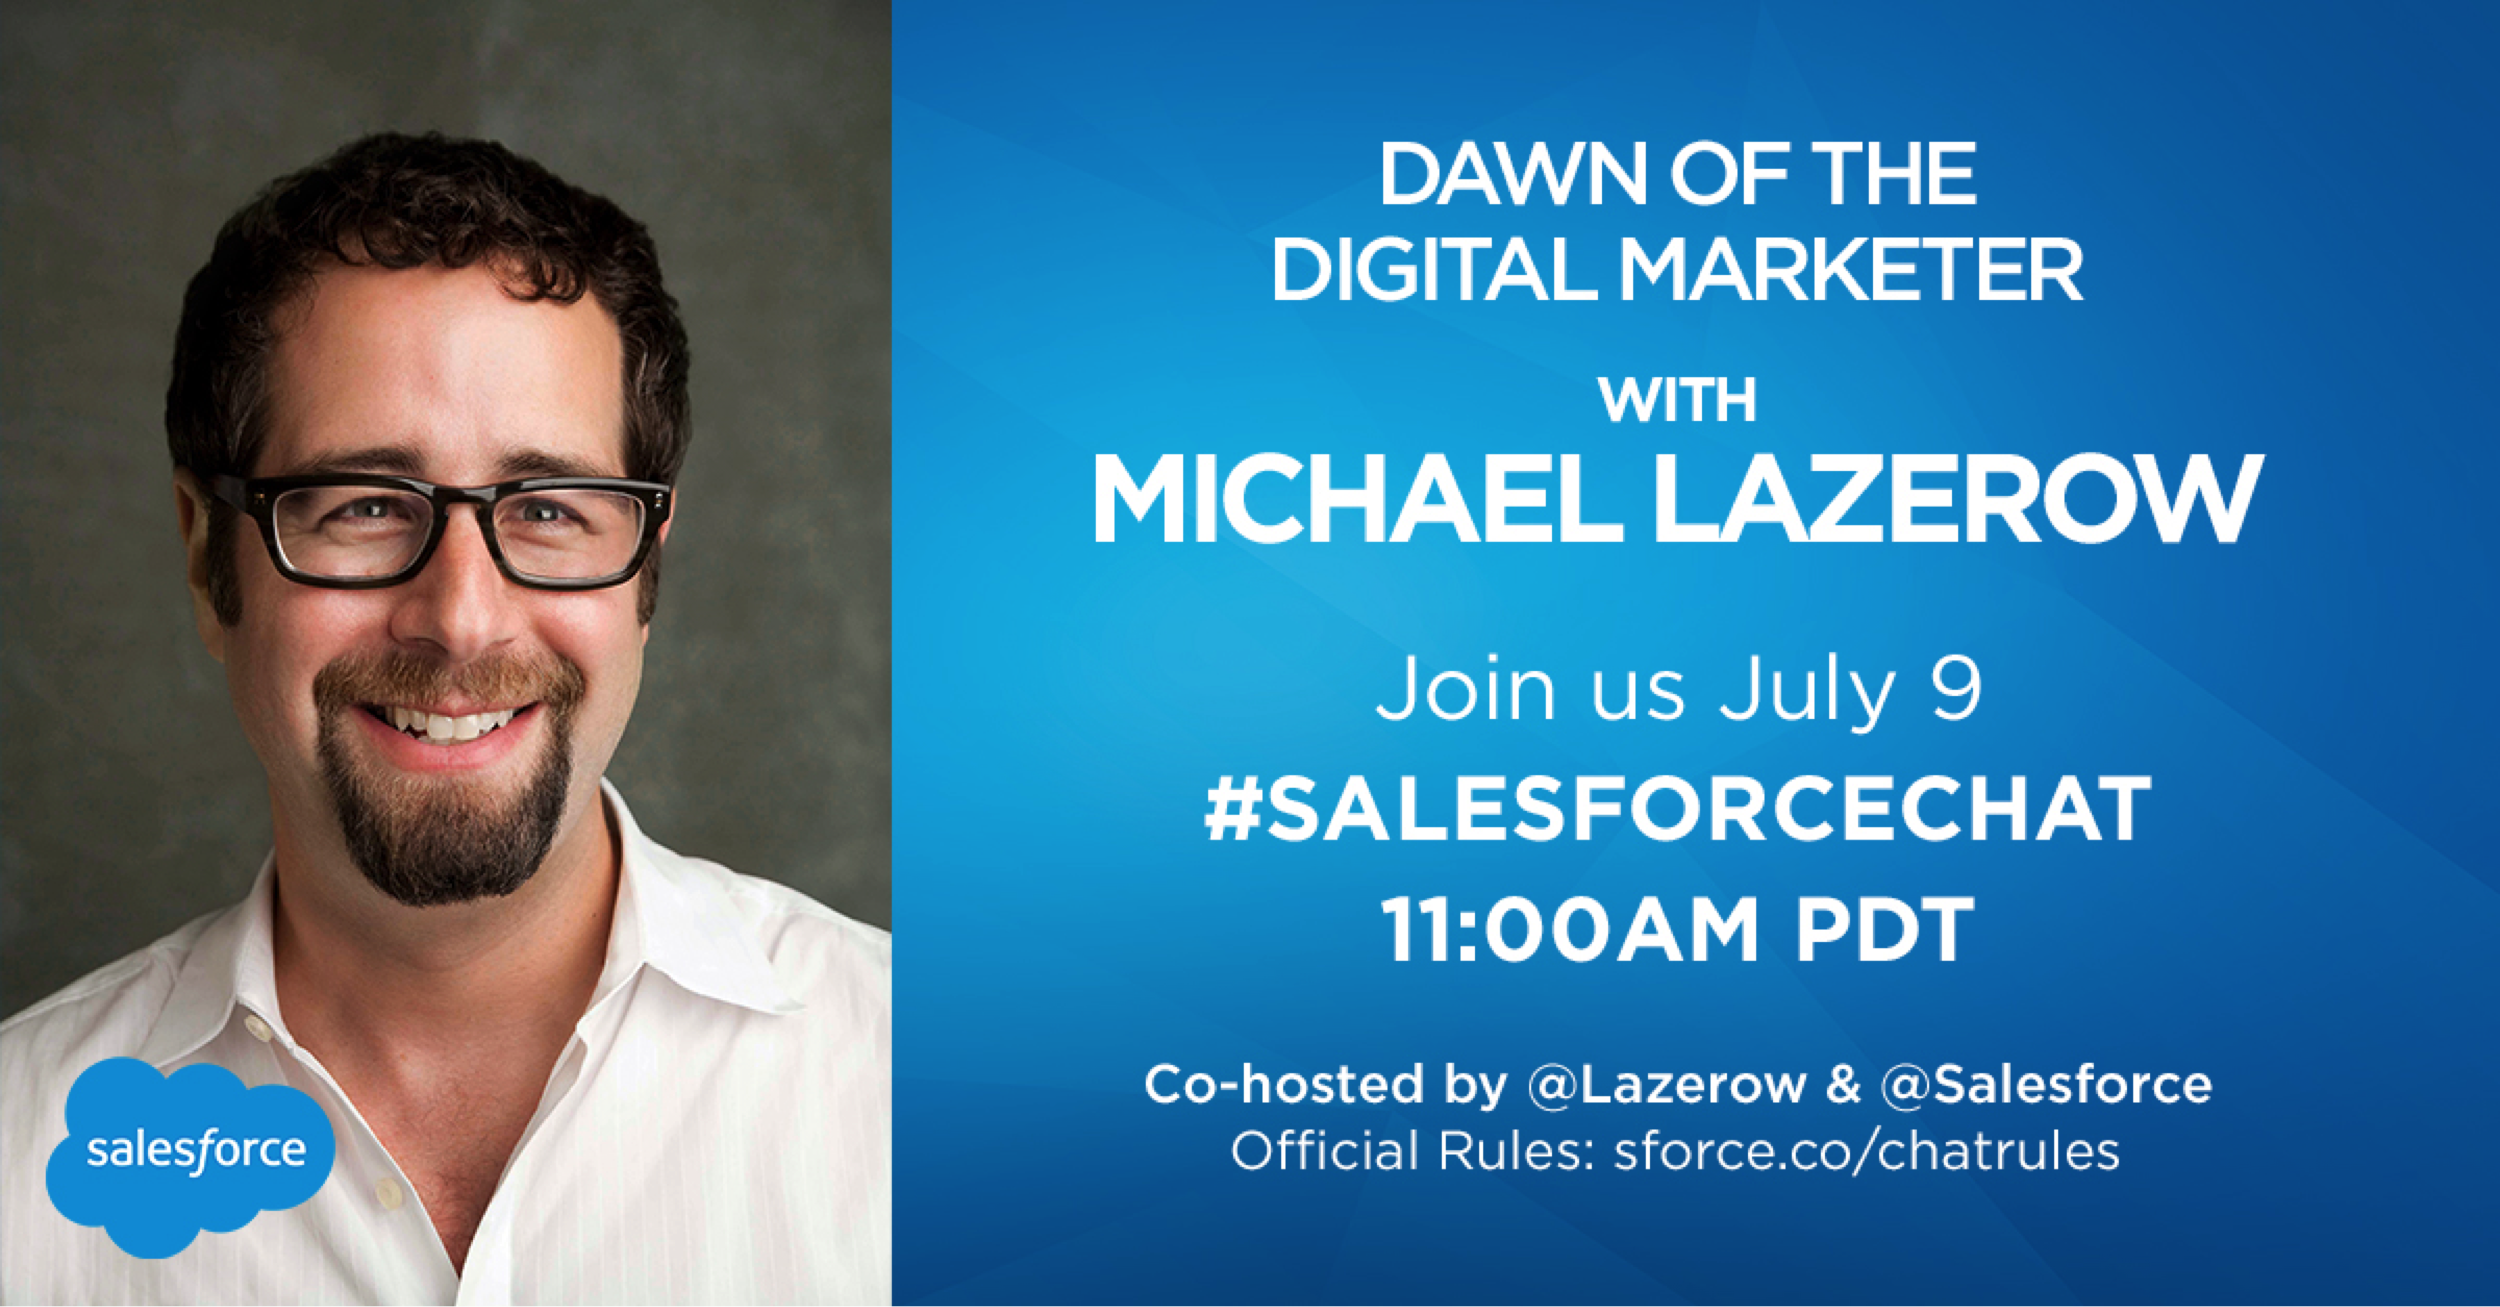 #SalesforceChat: Dawn of the Digital Marketer with Michael Lazerow